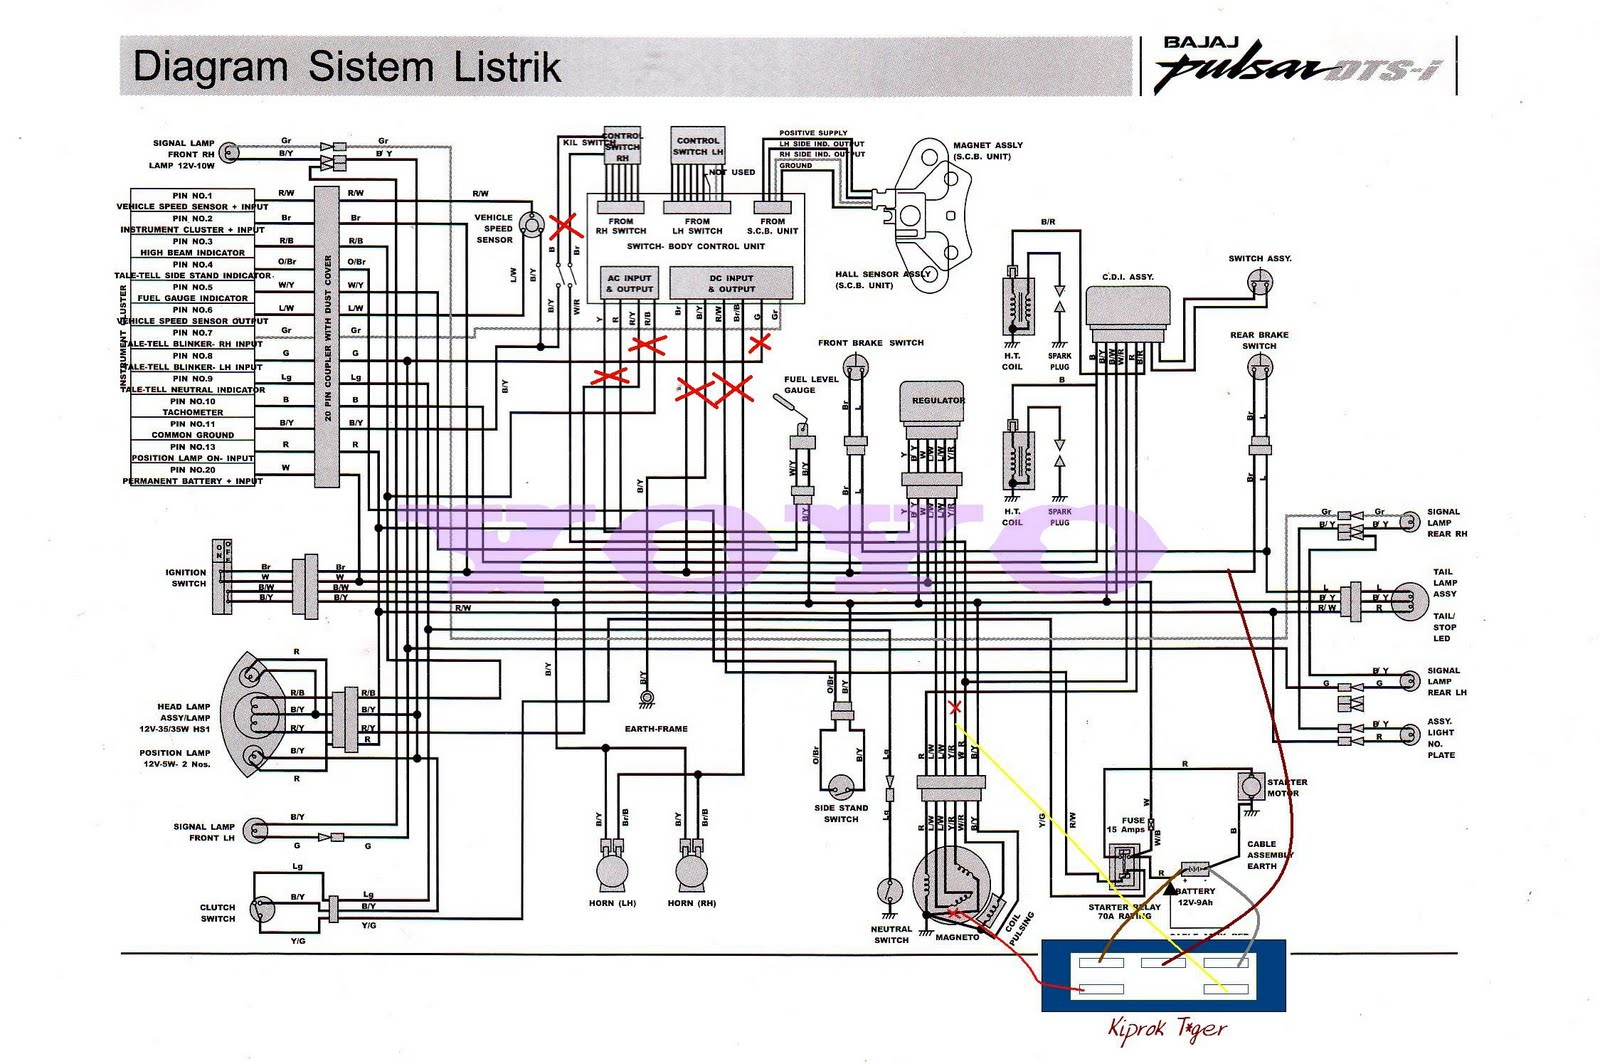 bajaj xcd 125 wiring diagram bajaj image wiring bajaj wave amazing photo on openiso org collection of cars on bajaj xcd 125 wiring diagram